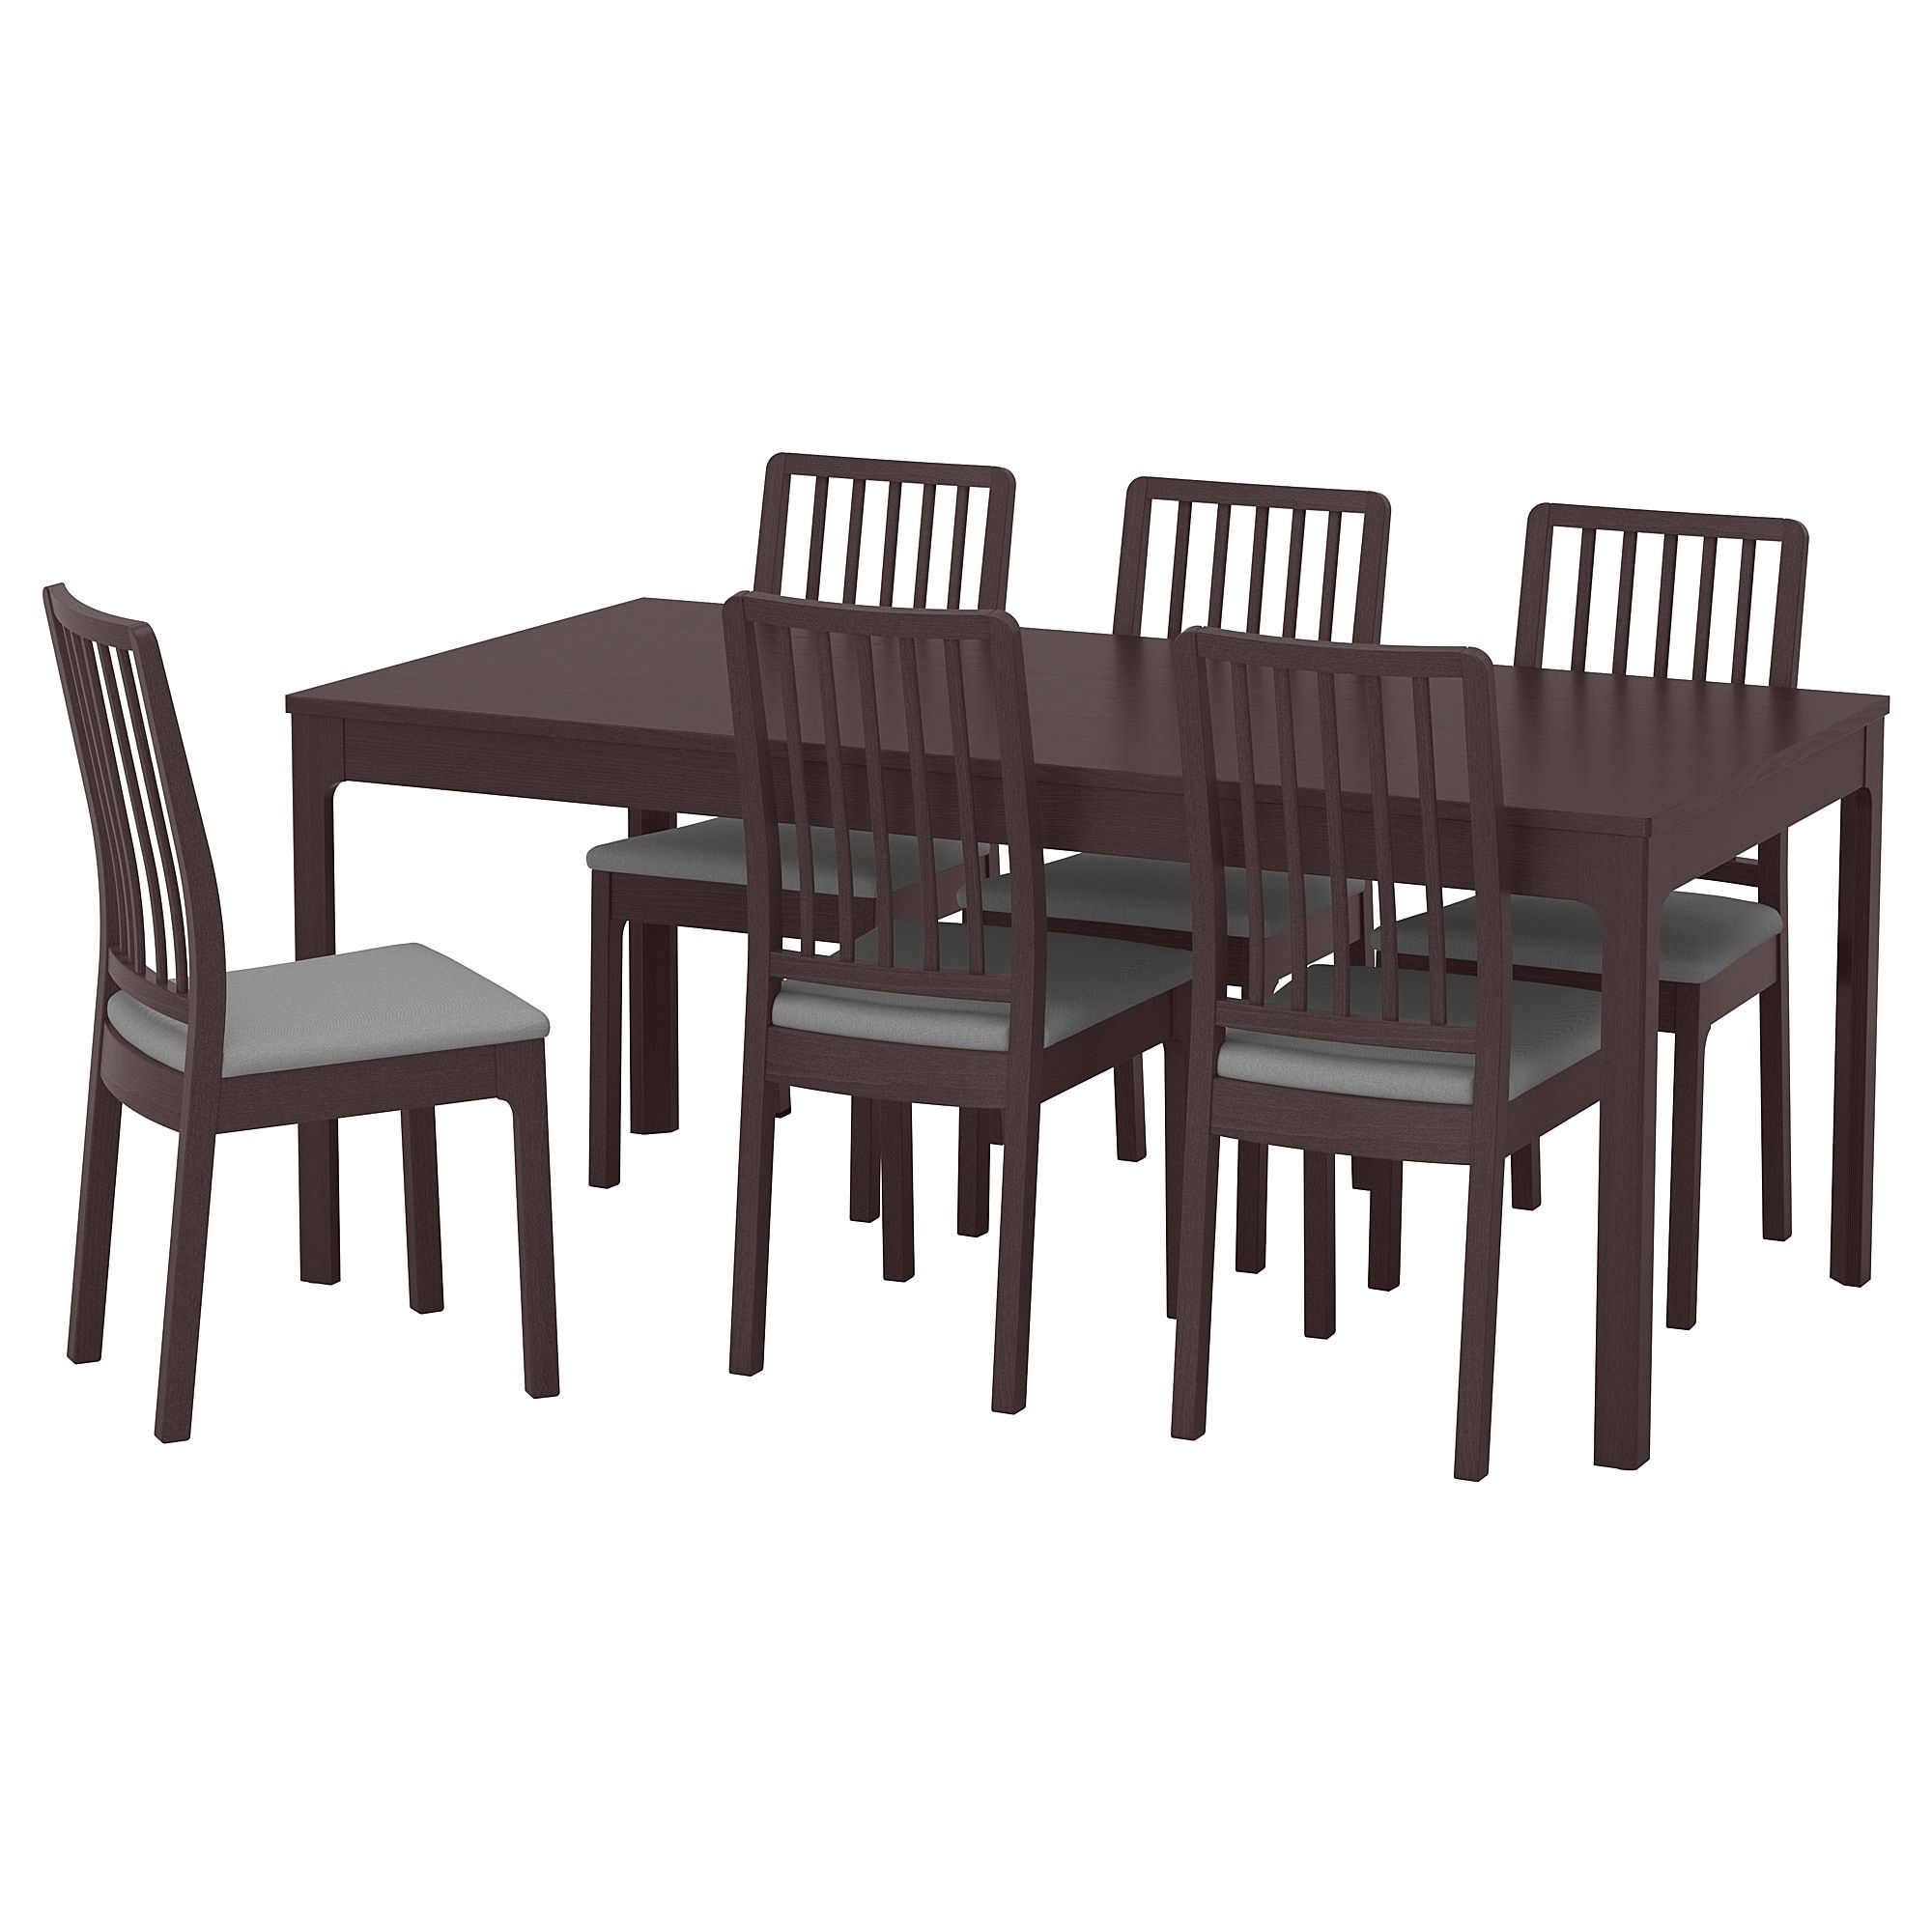 Ekedalen Ekedalen Table And 6 Chairs Dark Brown Orrsta Light Gray 70 7 8 94 1 2 With Images Ikea Dining Sets Ikea Dining Dining Room Sets